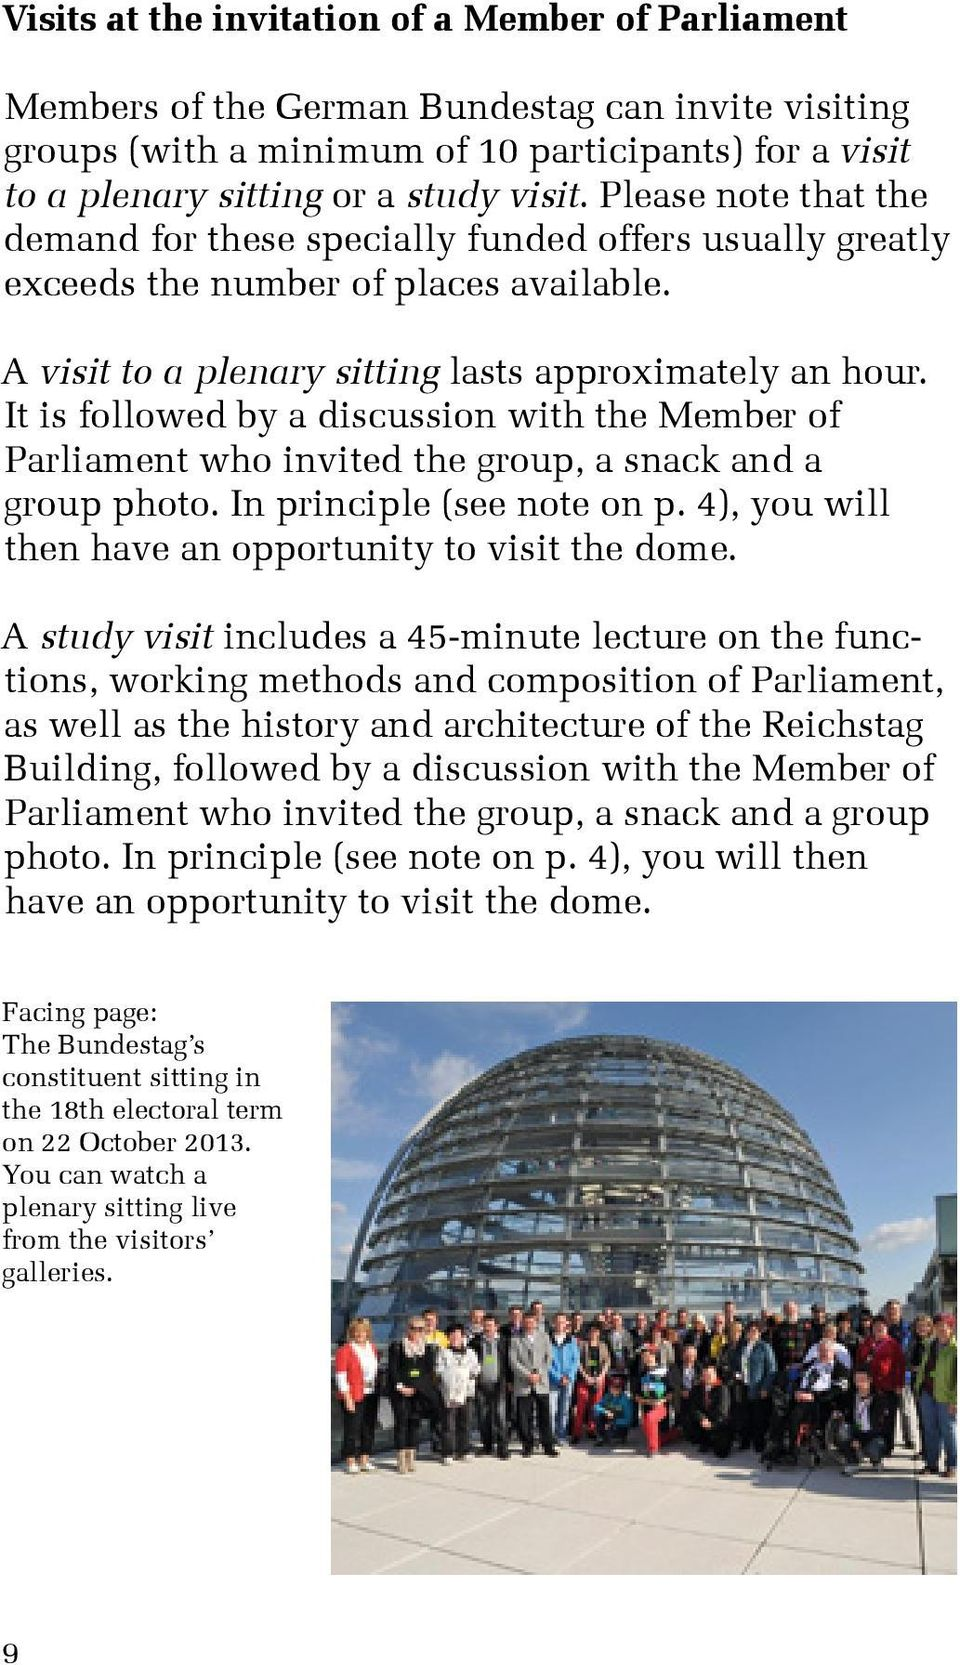 It is followed by a discussion with the Member of Parliament who invited the group, a snack and a group photo. In principle (see note on p. 4), you will then have an opportunity to visit the dome.